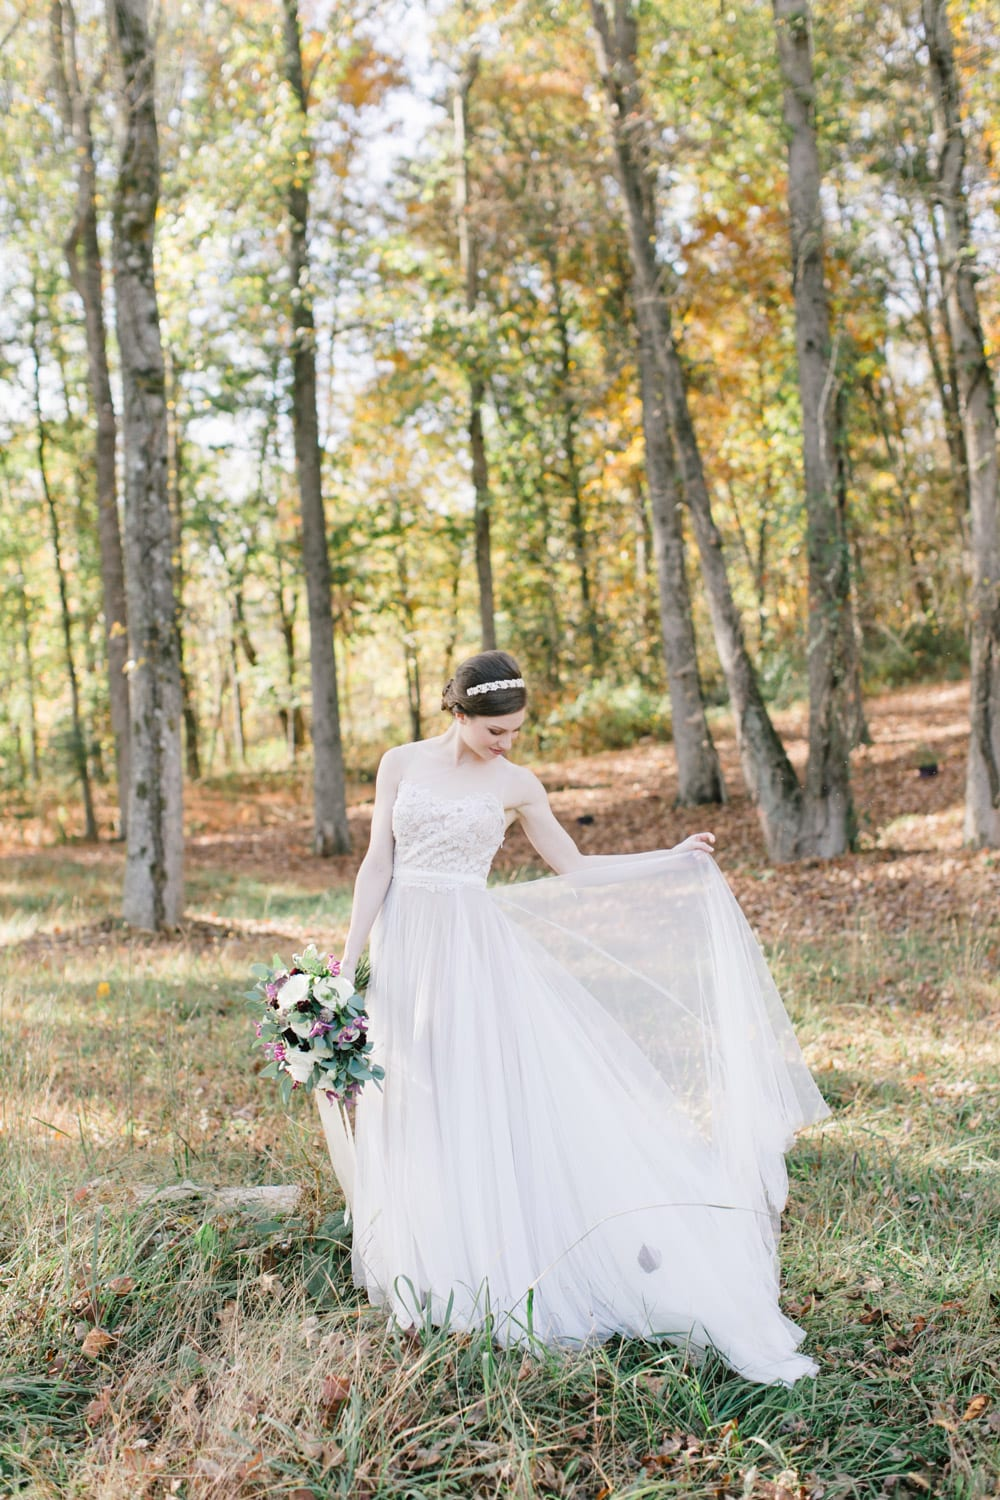 Bride stands in forest holding flowers